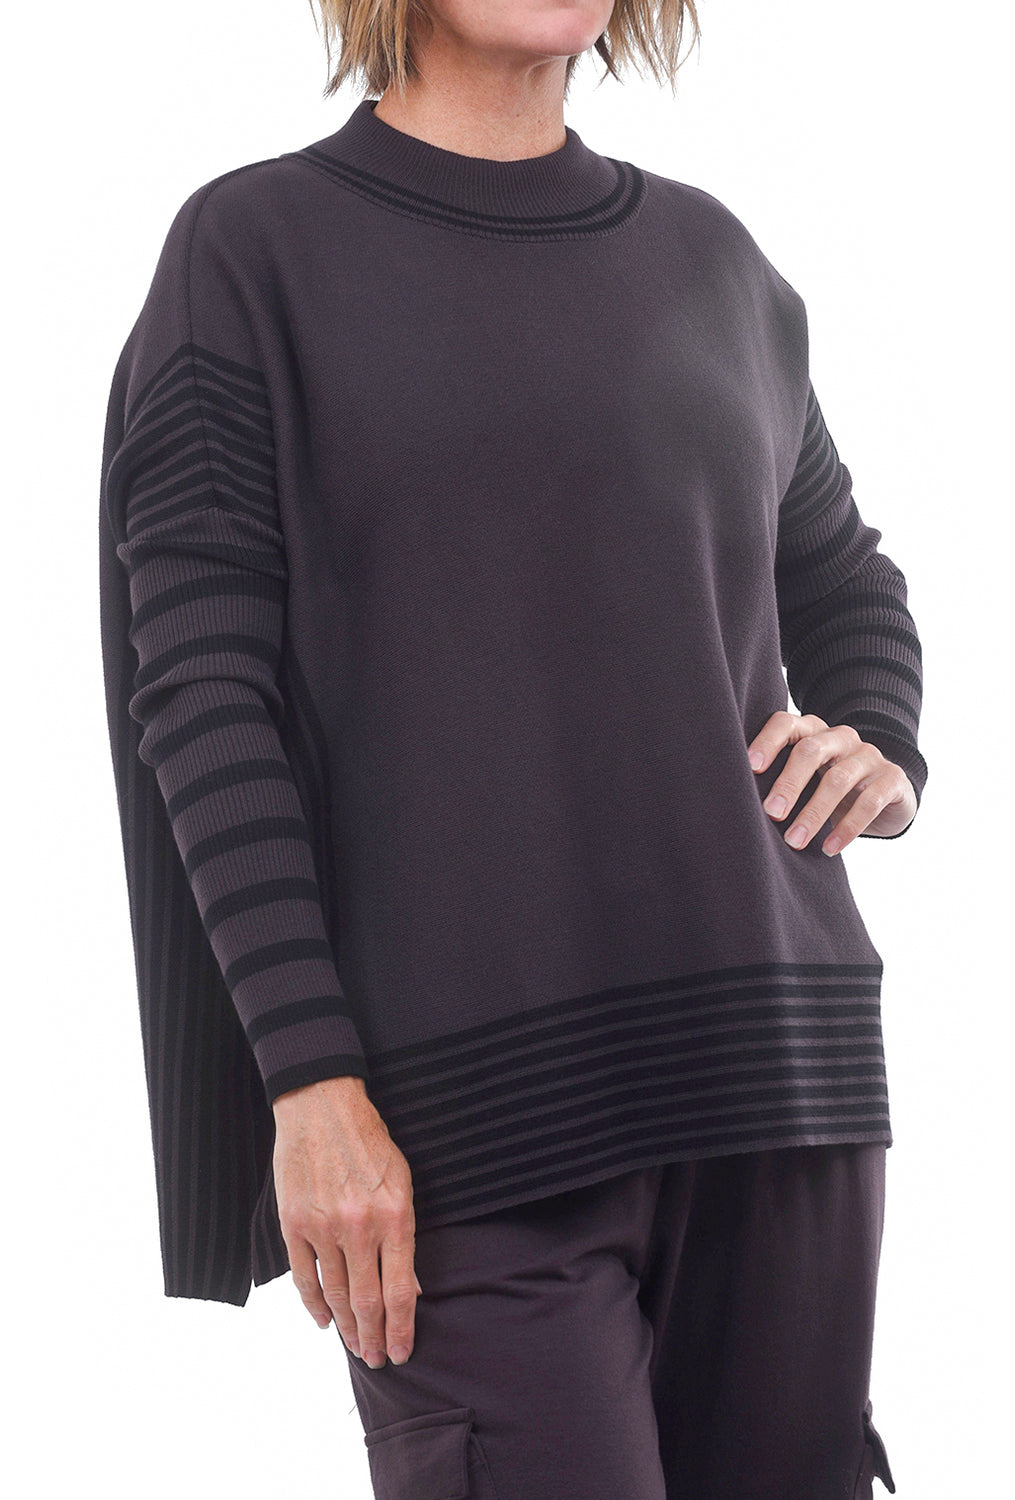 Planet Panel Block Sweater, Raisin/Black One Size Raisin/Black